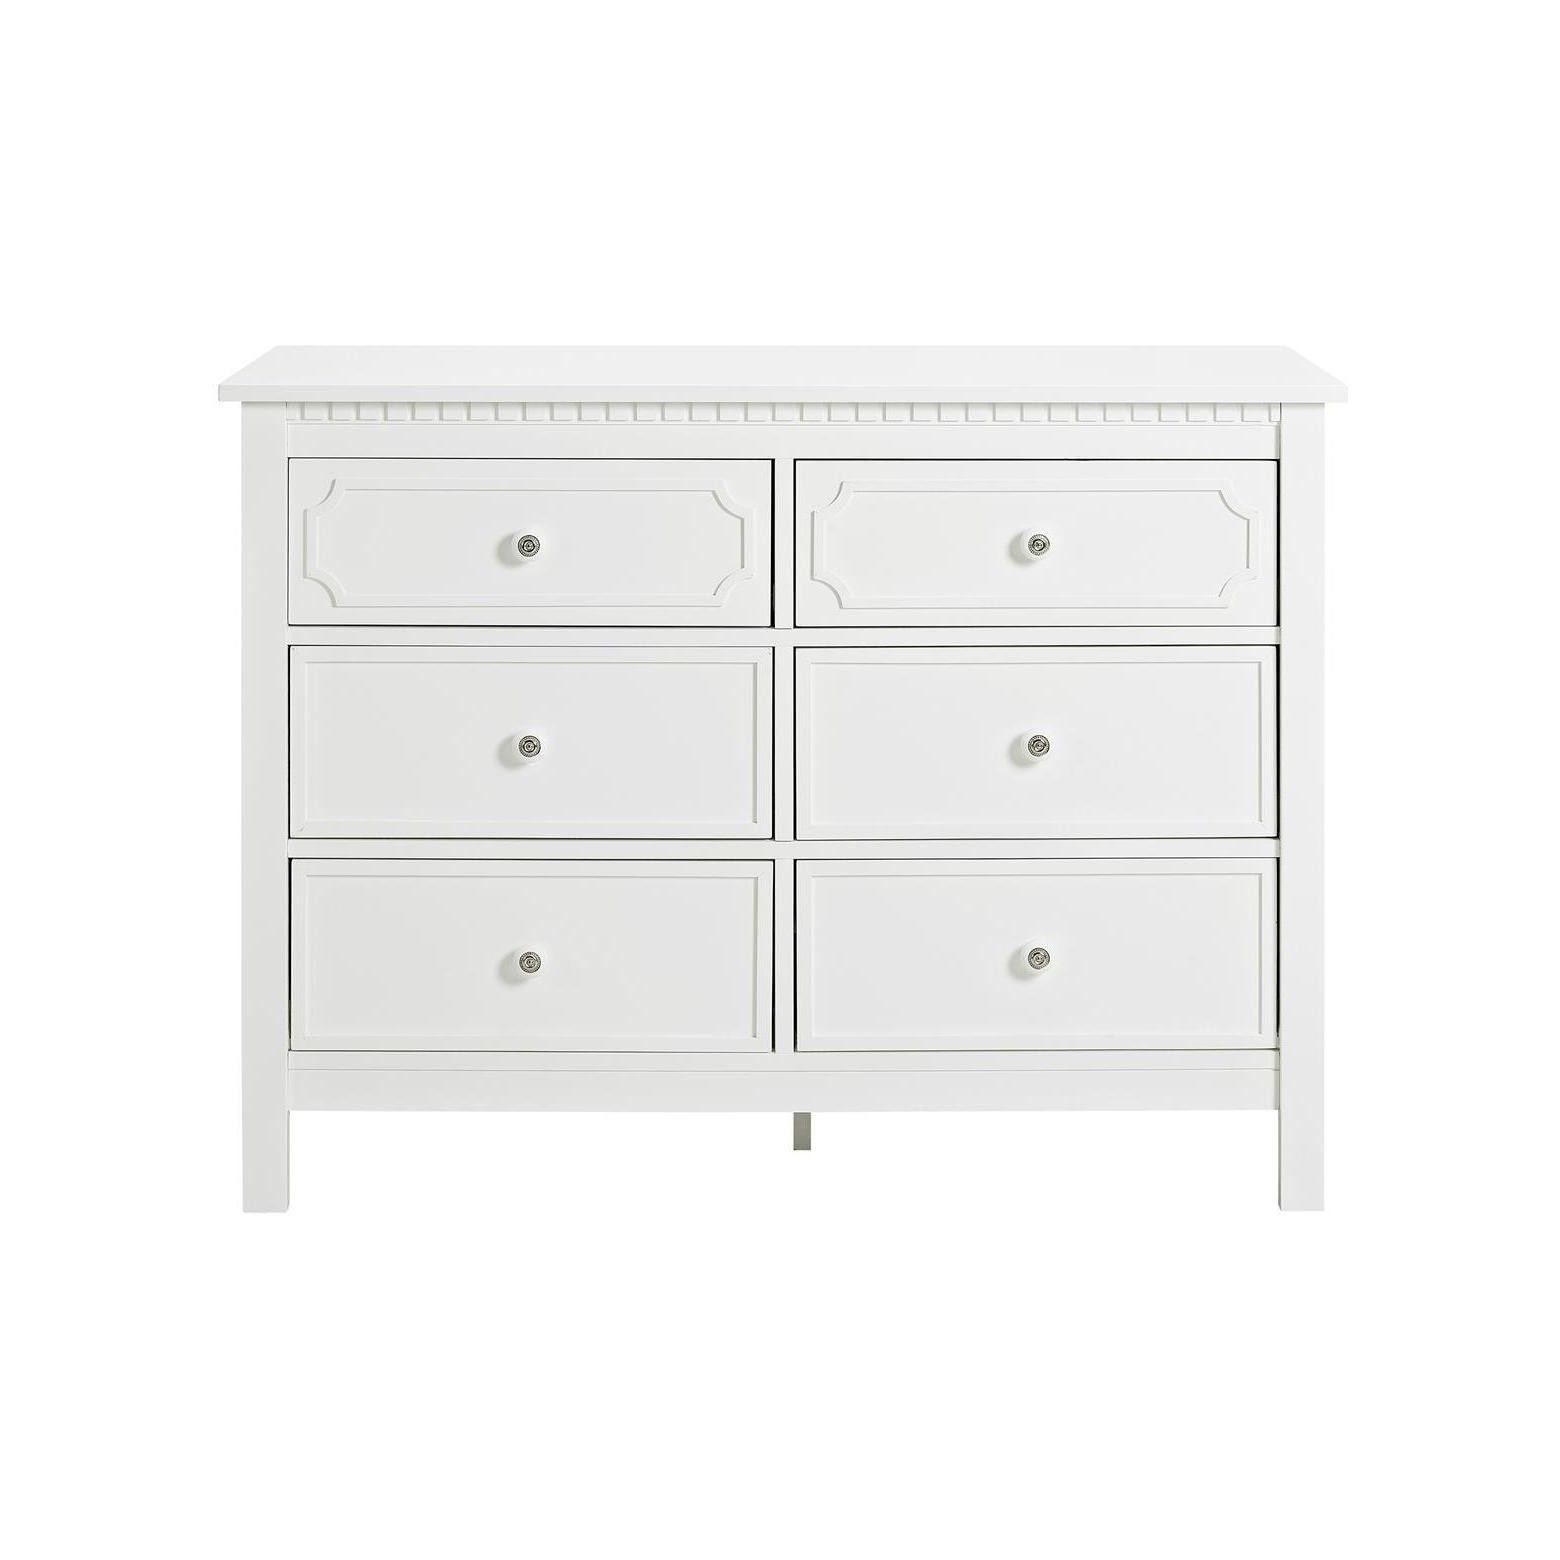 Target 309 33 5 Inches H X 45 Inches W X 19 Inches D Twin Bedroom Decor 6 Drawer Dresser Big Girl Rooms [ 1560 x 1560 Pixel ]